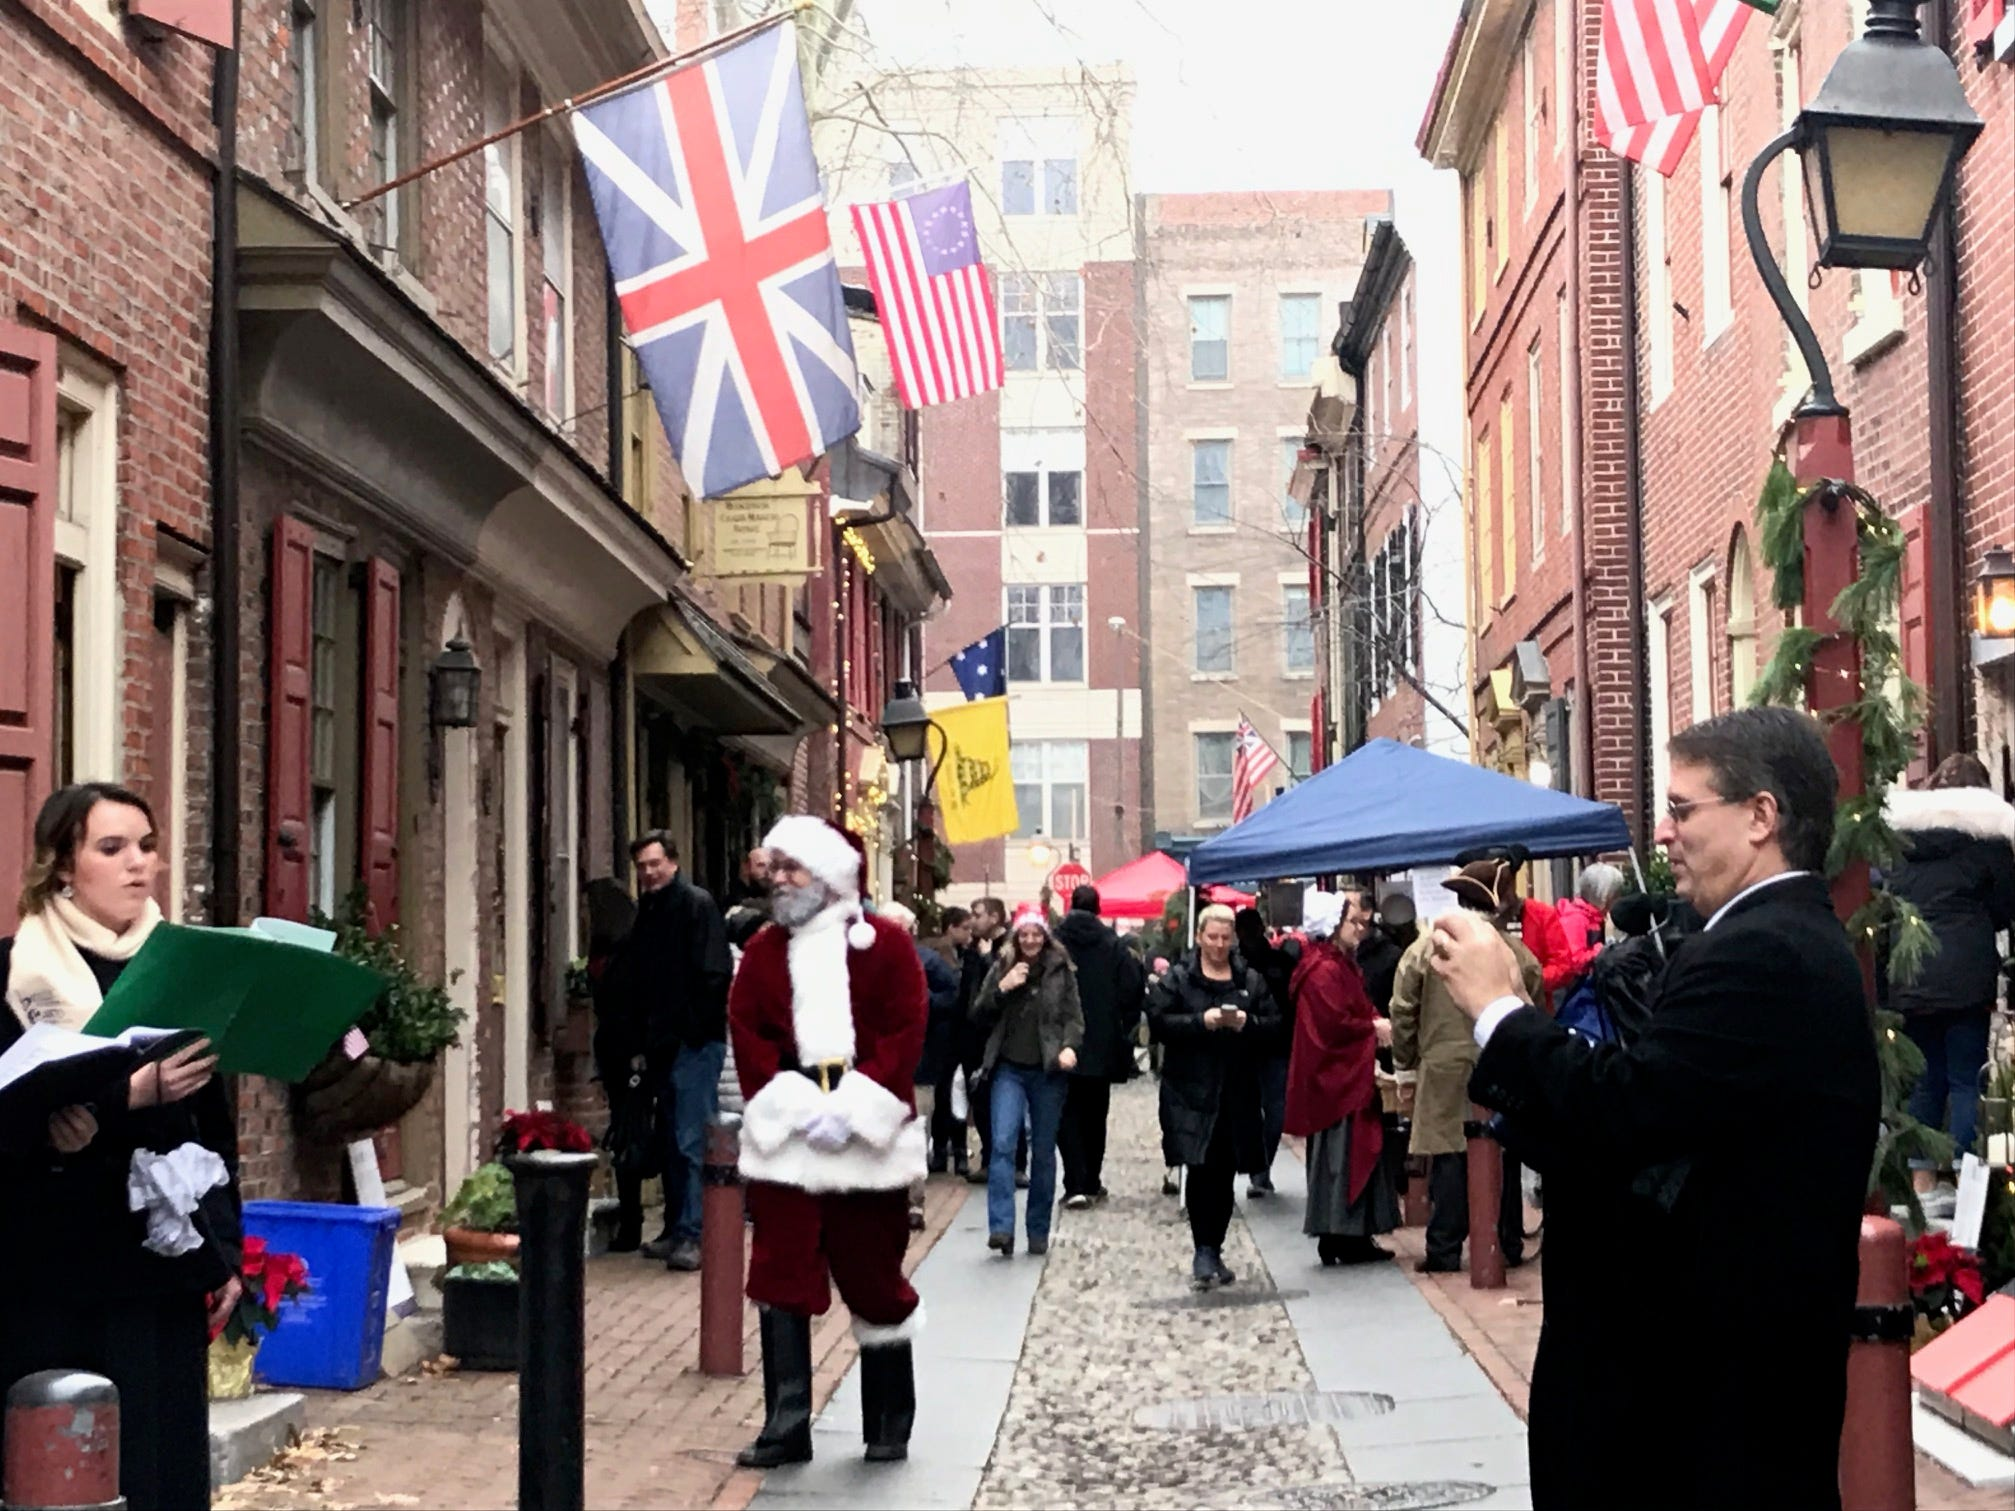 """Though visitors stroll downElfreth's Alley every day,the oldest continuousresidential street in America opens its doors and letthe public inside their one-of-a-kindhomes only twice a year — for """"Deck The Alley"""" in December and """"Fete Day"""" in June, always the first Saturdays ofthe months.MyCentralJersey.com was able to get an exclusive behind-the-scenes look at the homes from Elfreth's Alley resident Sheri Watson, who grew up in East Brunswick."""